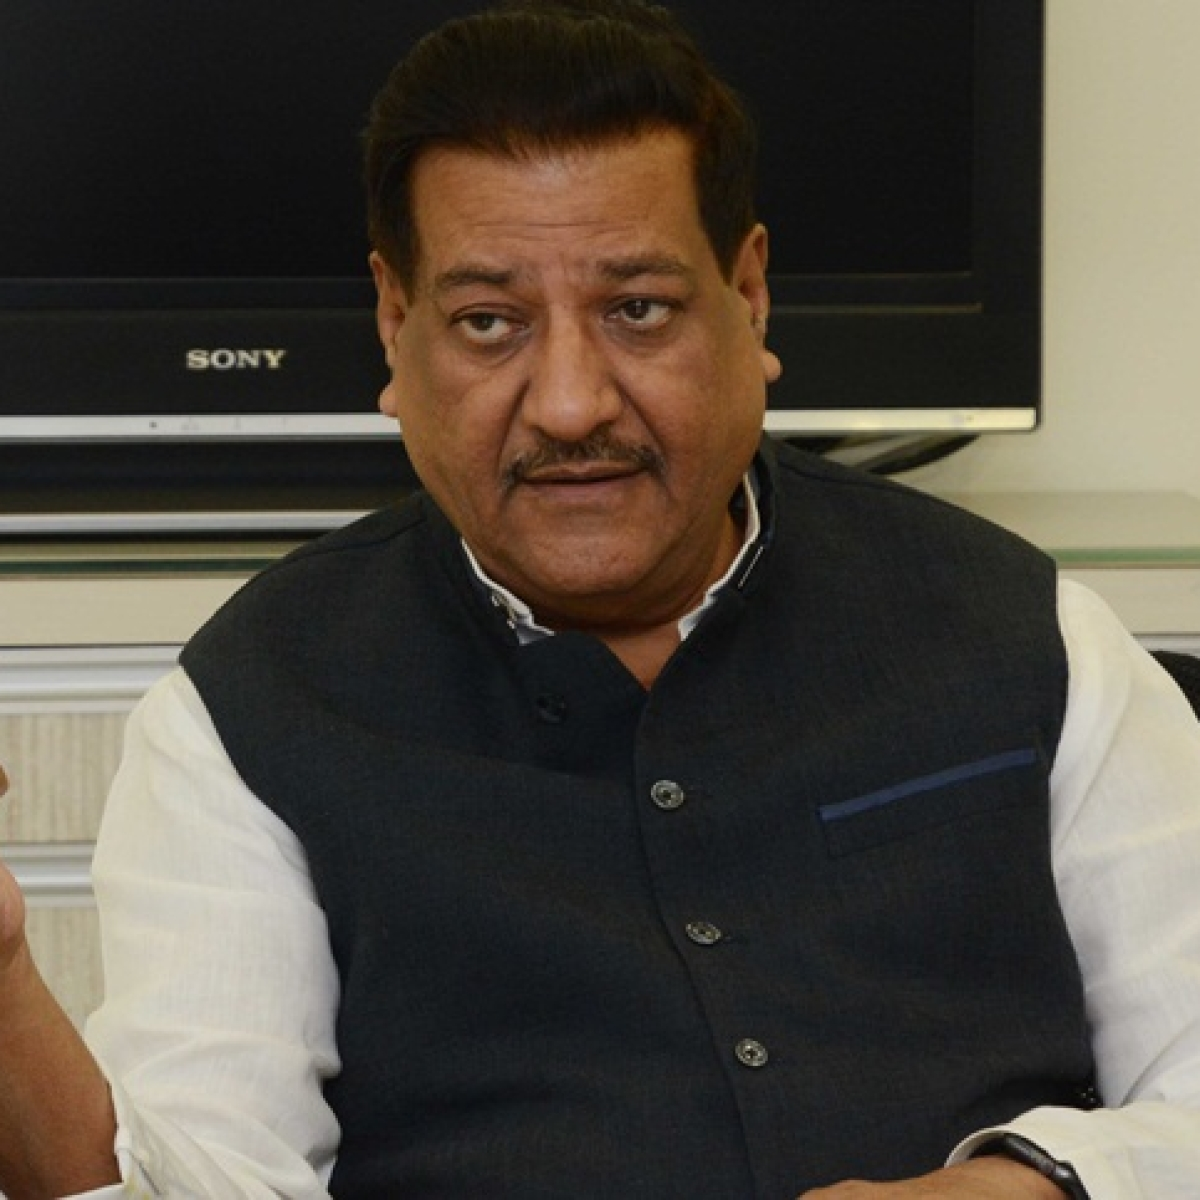 Former CM Prithviraj Chavan urged Maha govt to resume distribution of newspapers amid COVID-19 lockdown